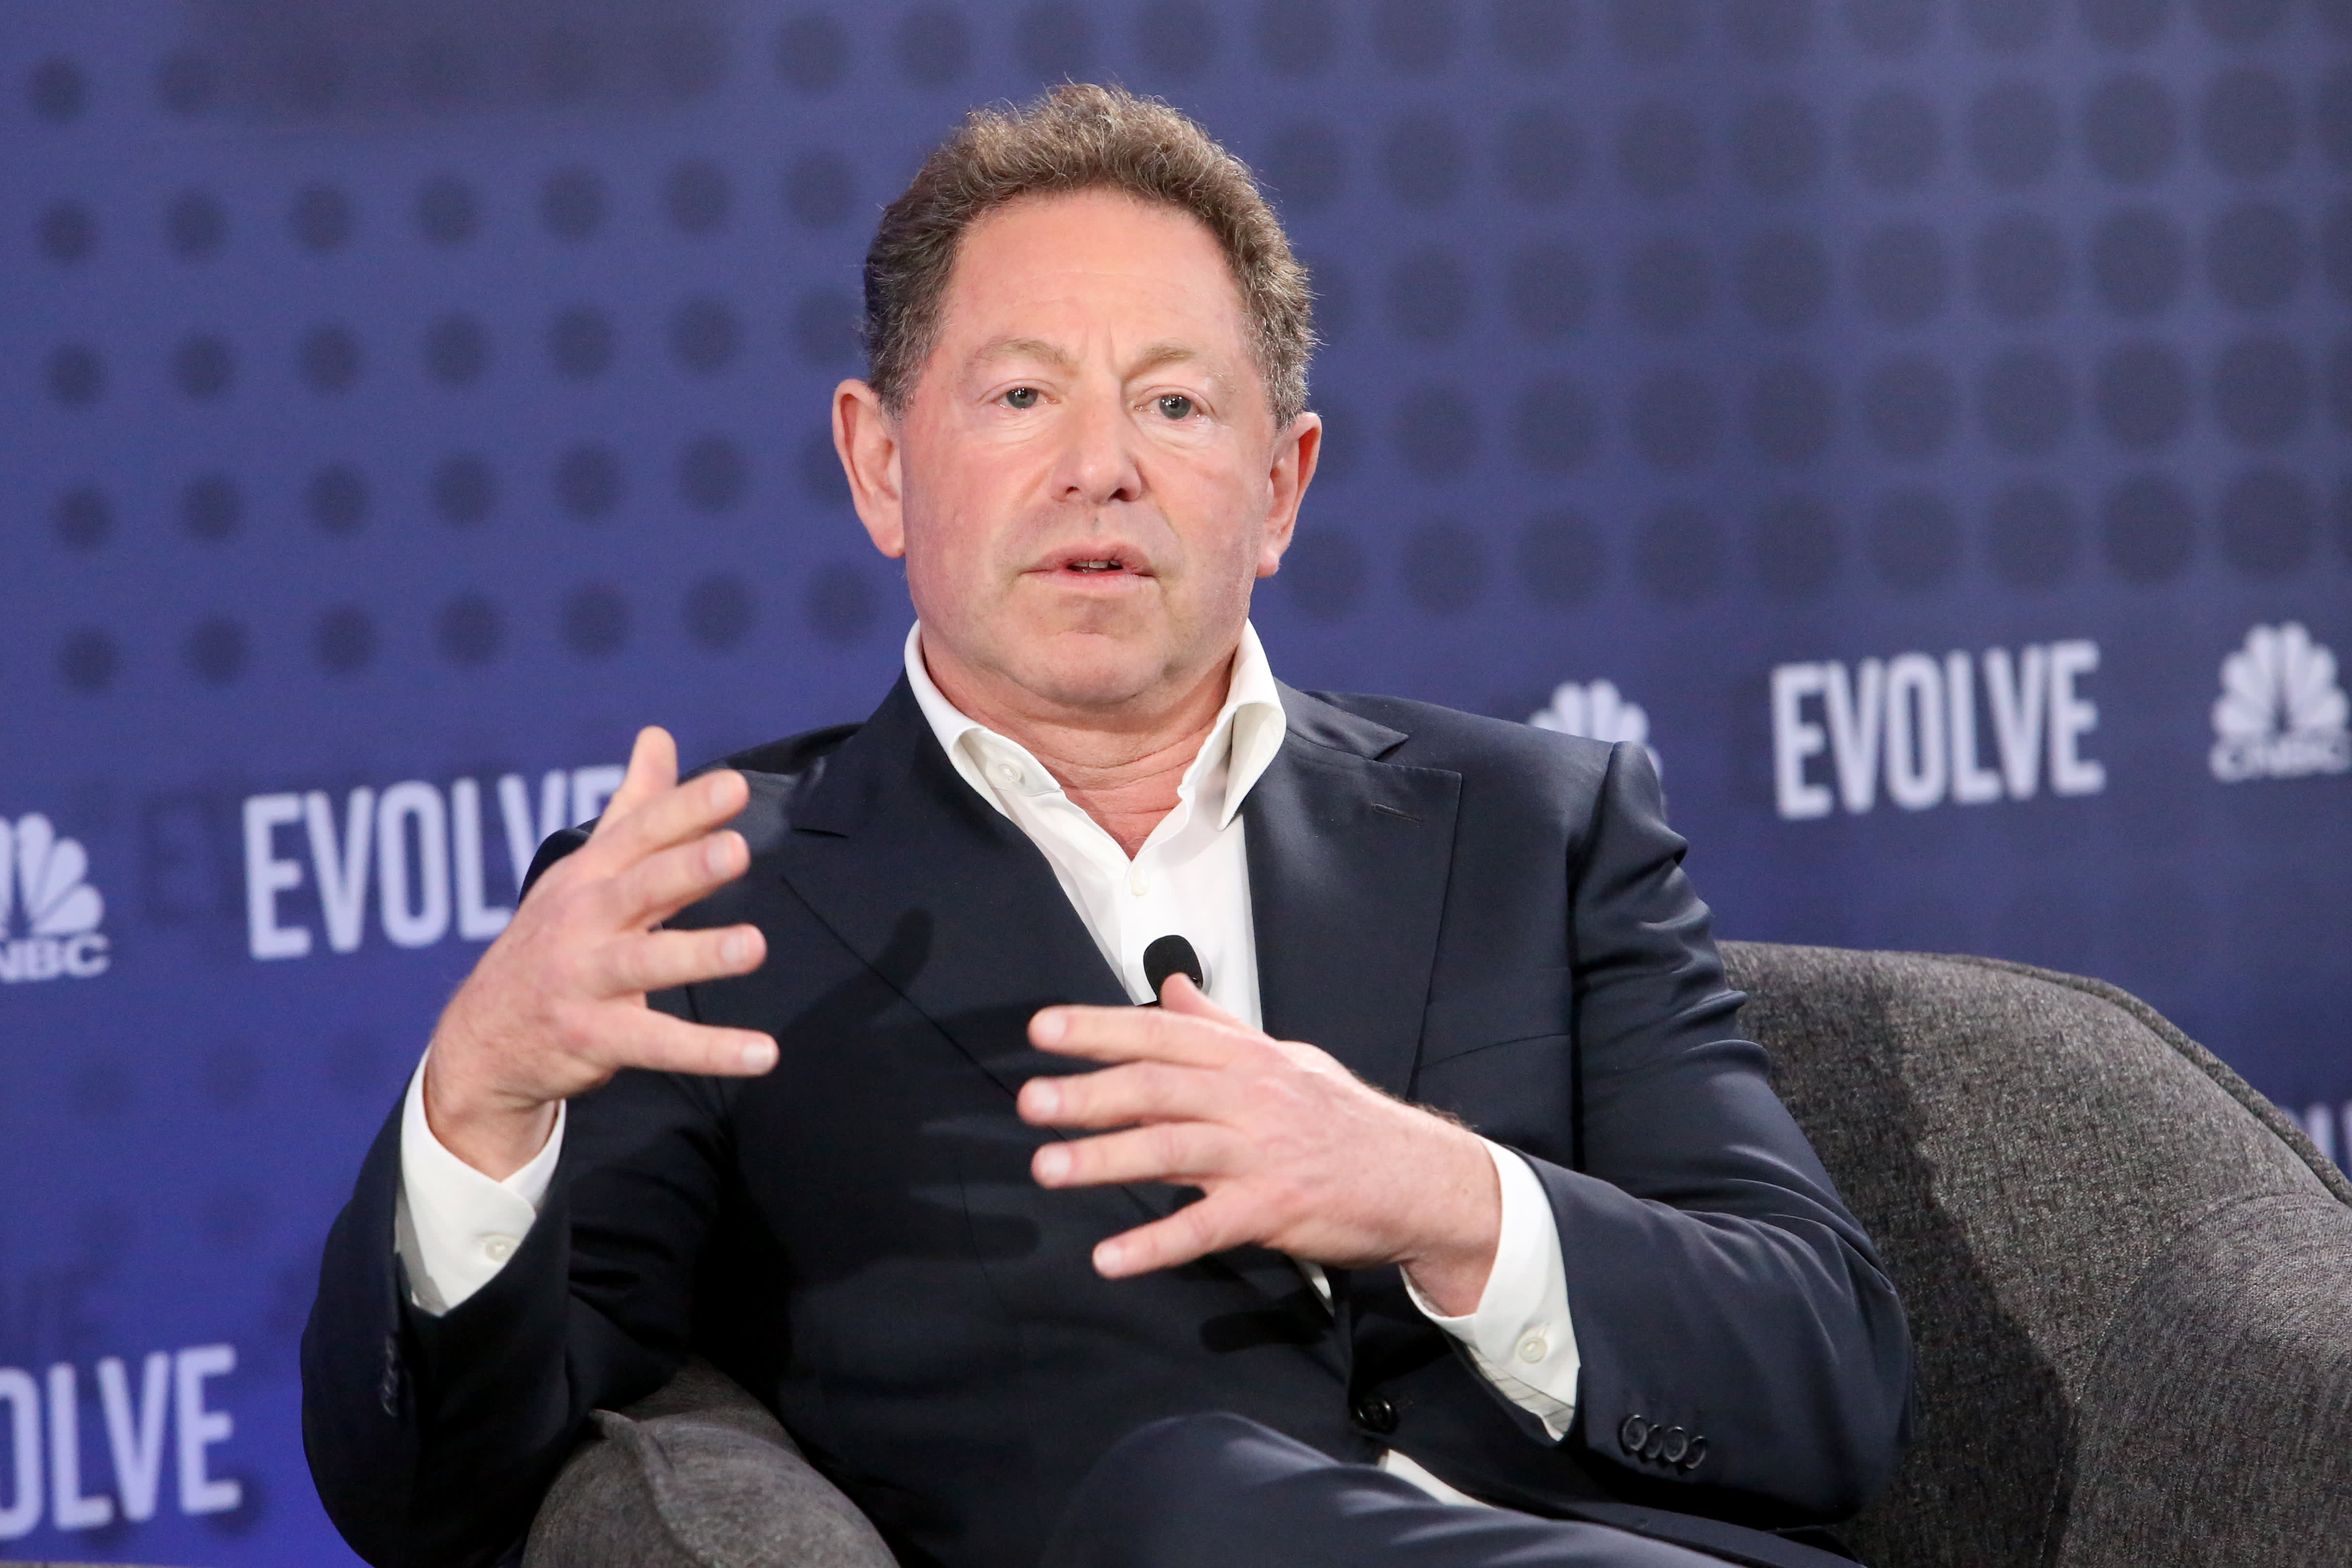 Activision Blizzard CEO: No 'good reason' company won't hit 1 billion users in 5 years